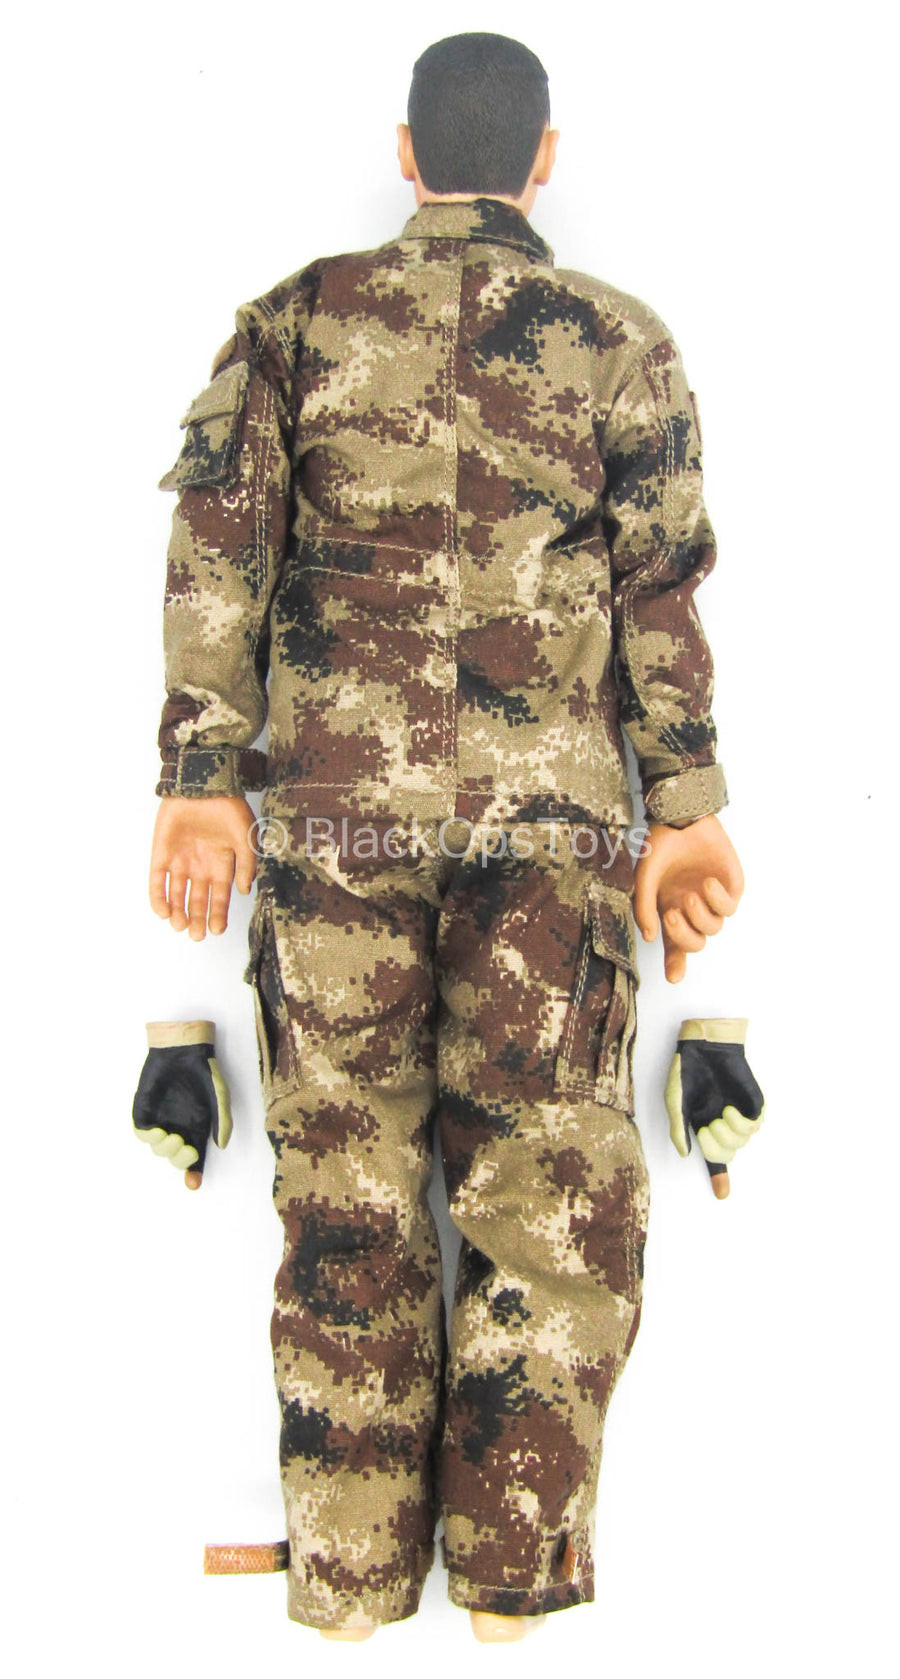 PLA Desert Wolf - Male Body & Head Sculpt w/Arid Type 07 Uniform